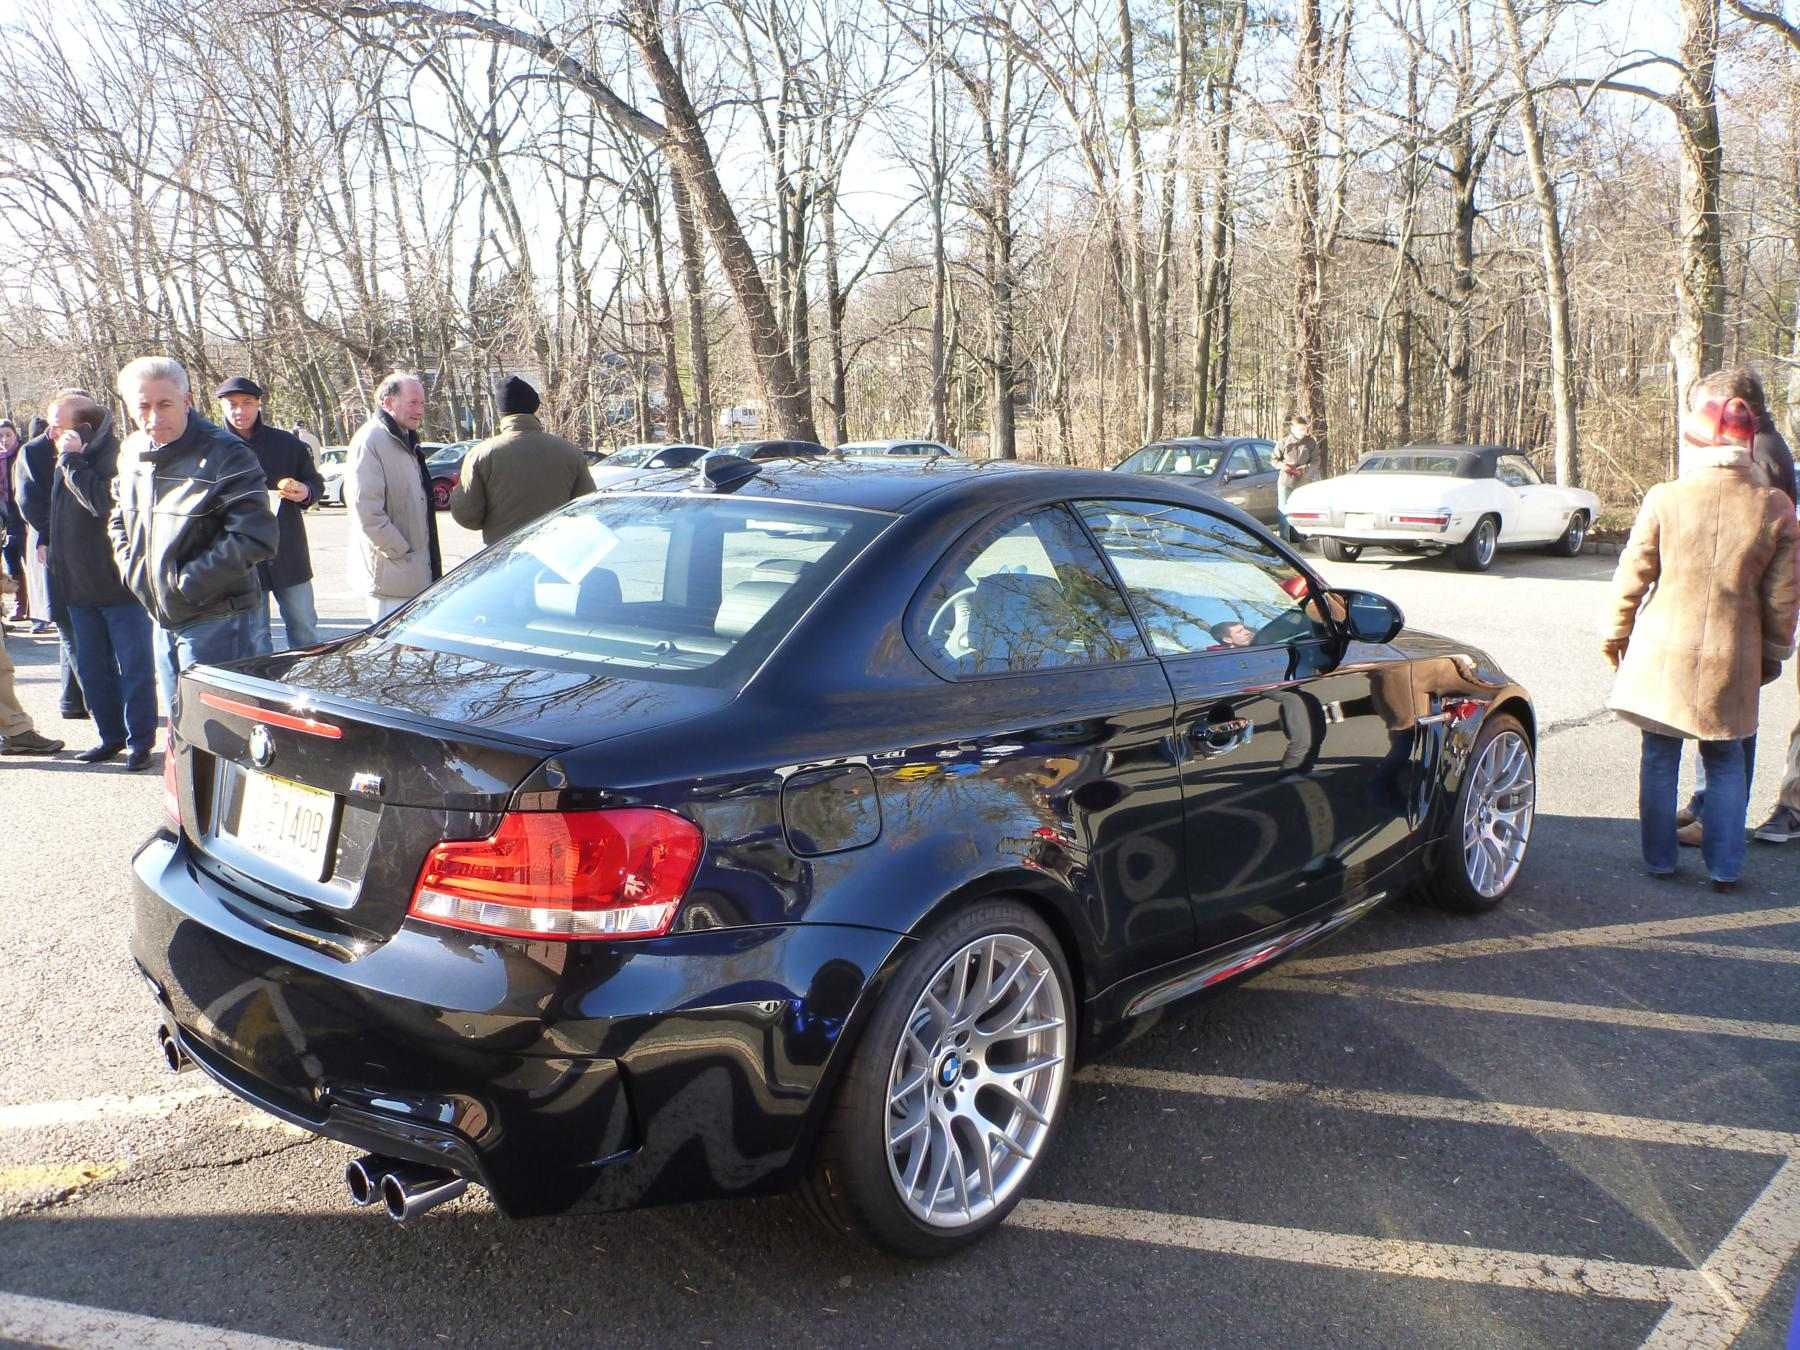 F10 M5 at NJ Cars and Coffee - 12/18/2011-12-18-2011-040_1800x1350.jpg